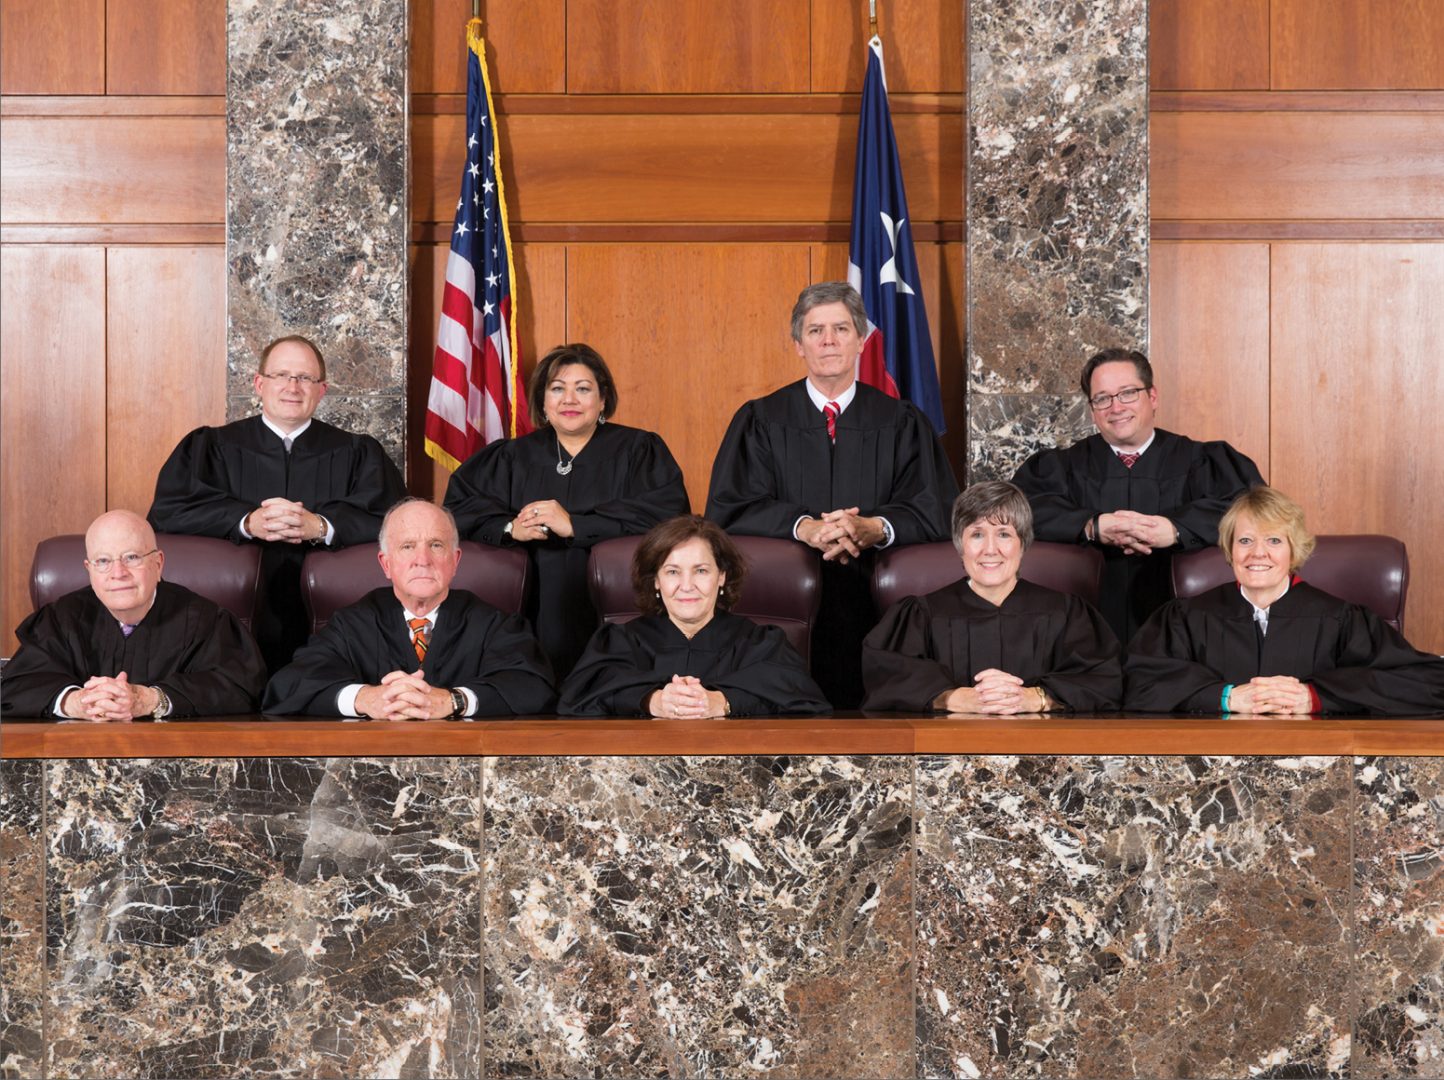 Texas Court of Criminal Appeals